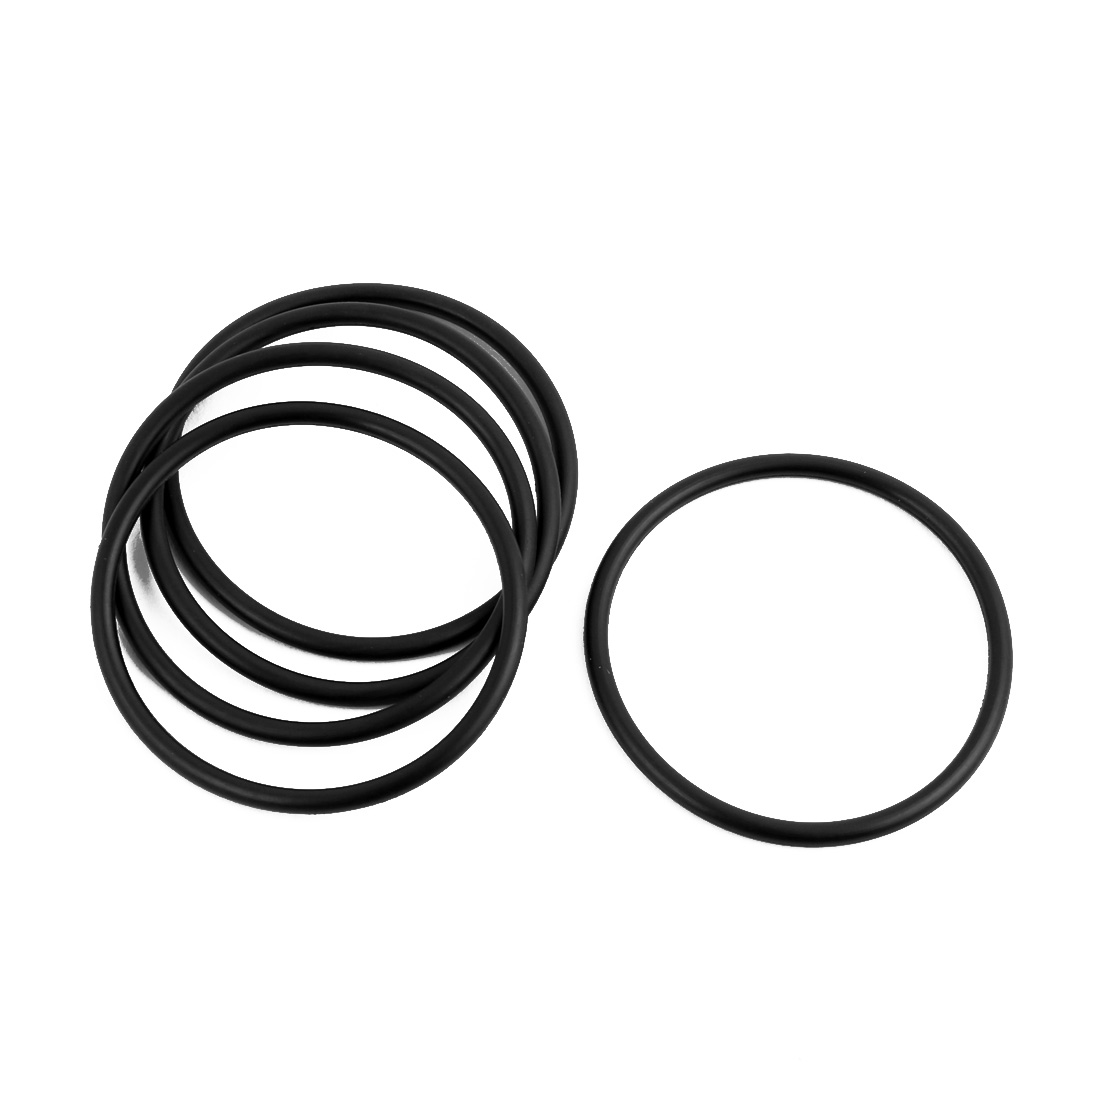 5Pcs Black 36 x 2mm Industrial Flexible Rubber O Ring Oil Sealing Grommets